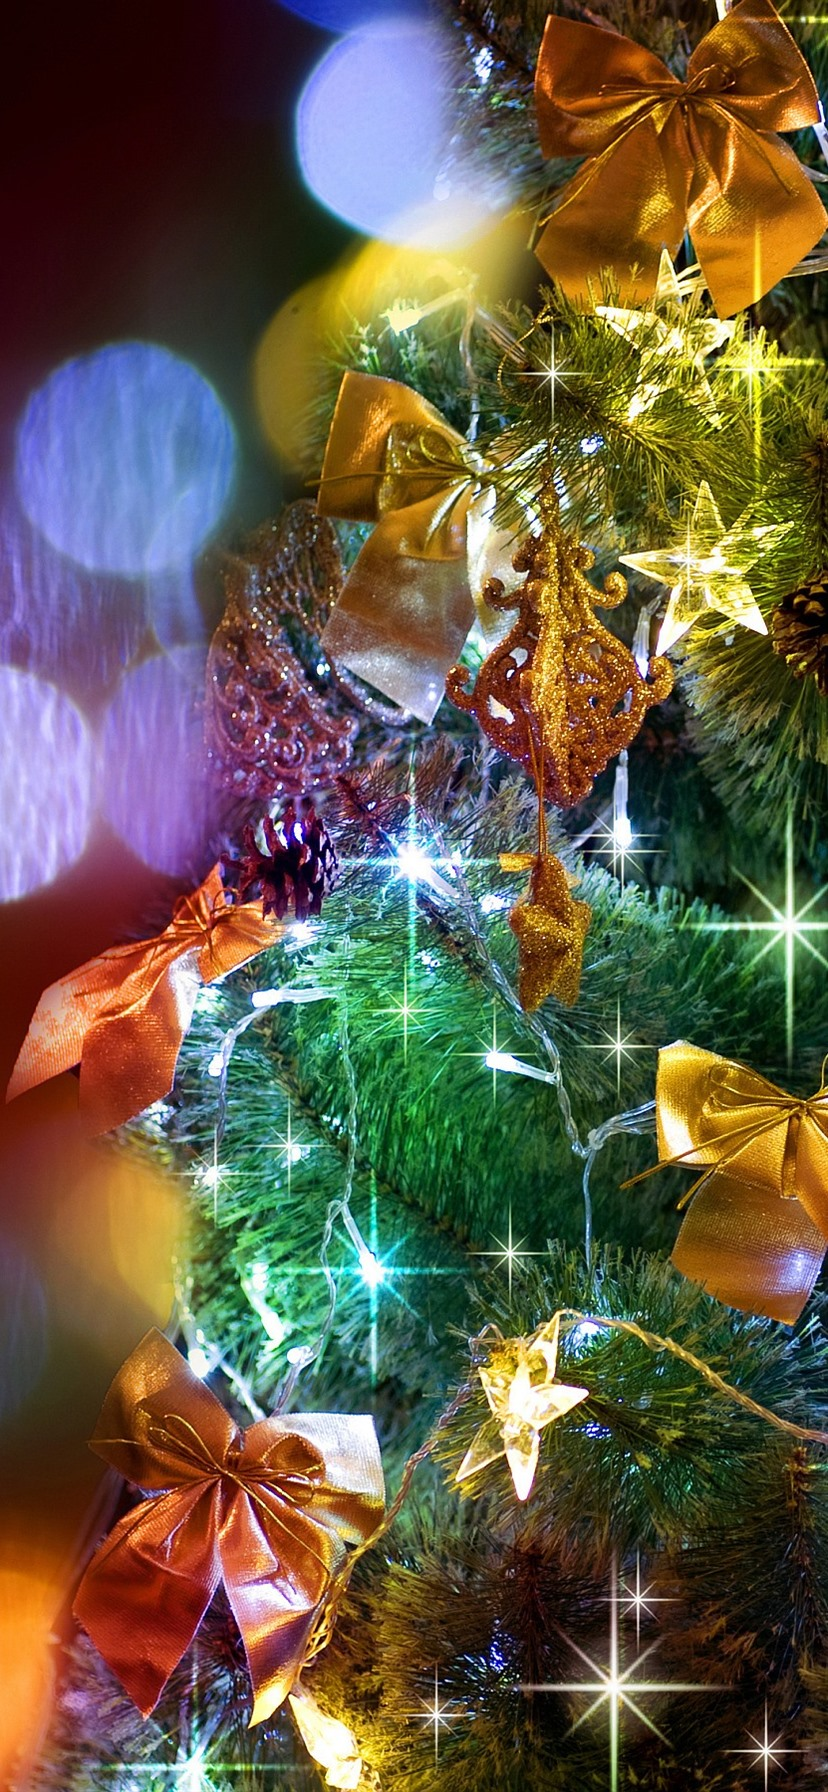 Christmas Tree Colorful Lights Shine 828x1792 Iphone 11 Xr Wallpaper Background Picture Image